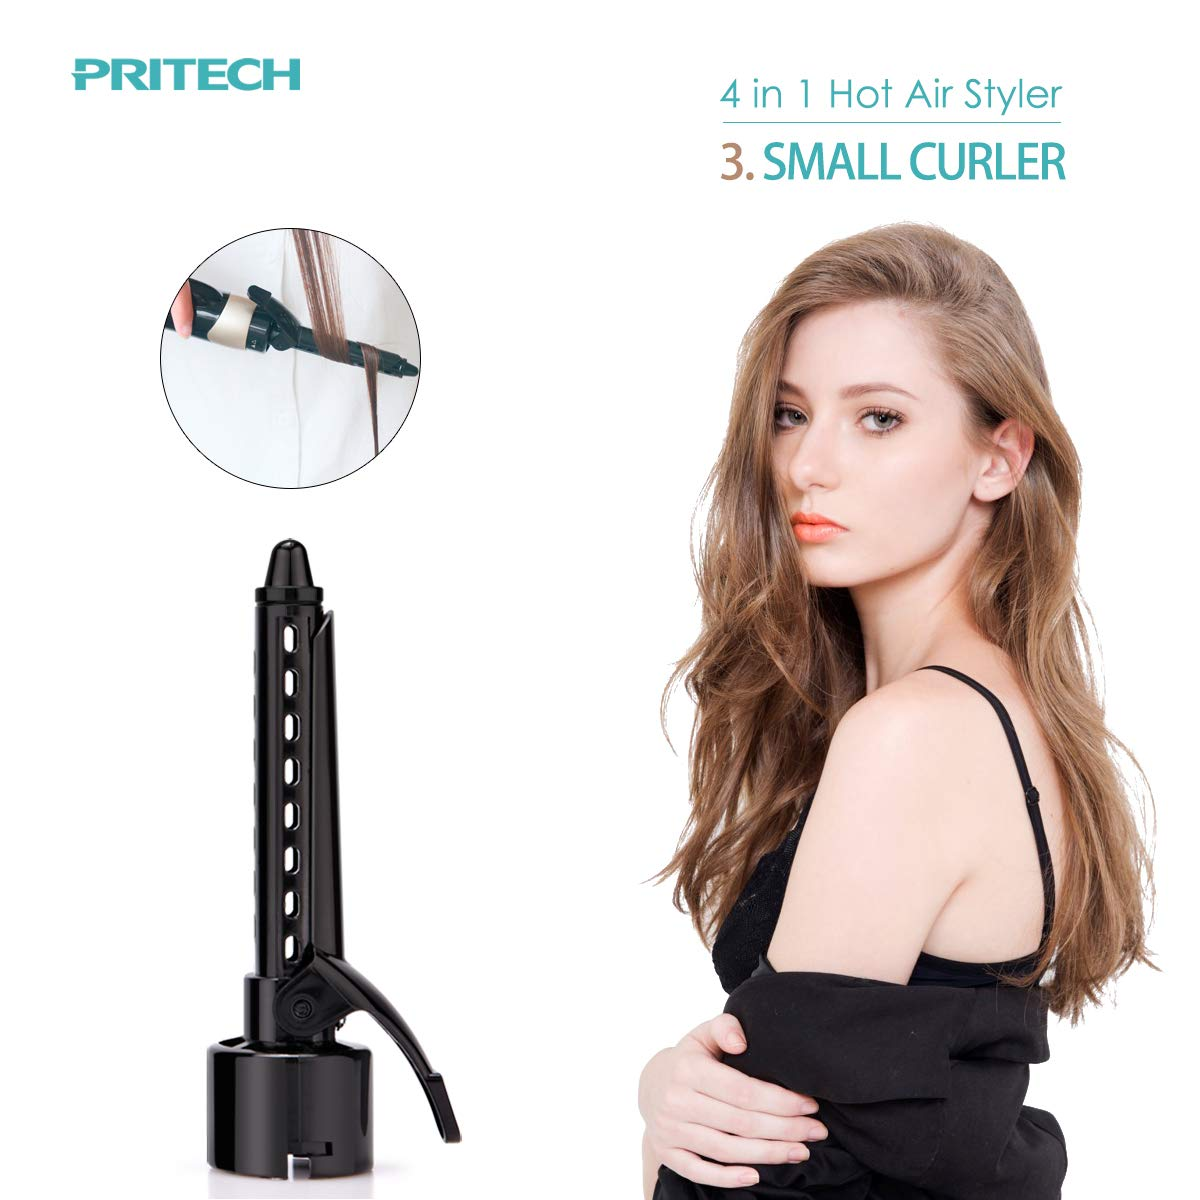 PRITECH 4 in 1 Hair Dryer Hot Air Brush Women Styling Tools Hairdresser Set Hair Diffuser For Professional Salon Curler Multifunction Stylist Straightener ...